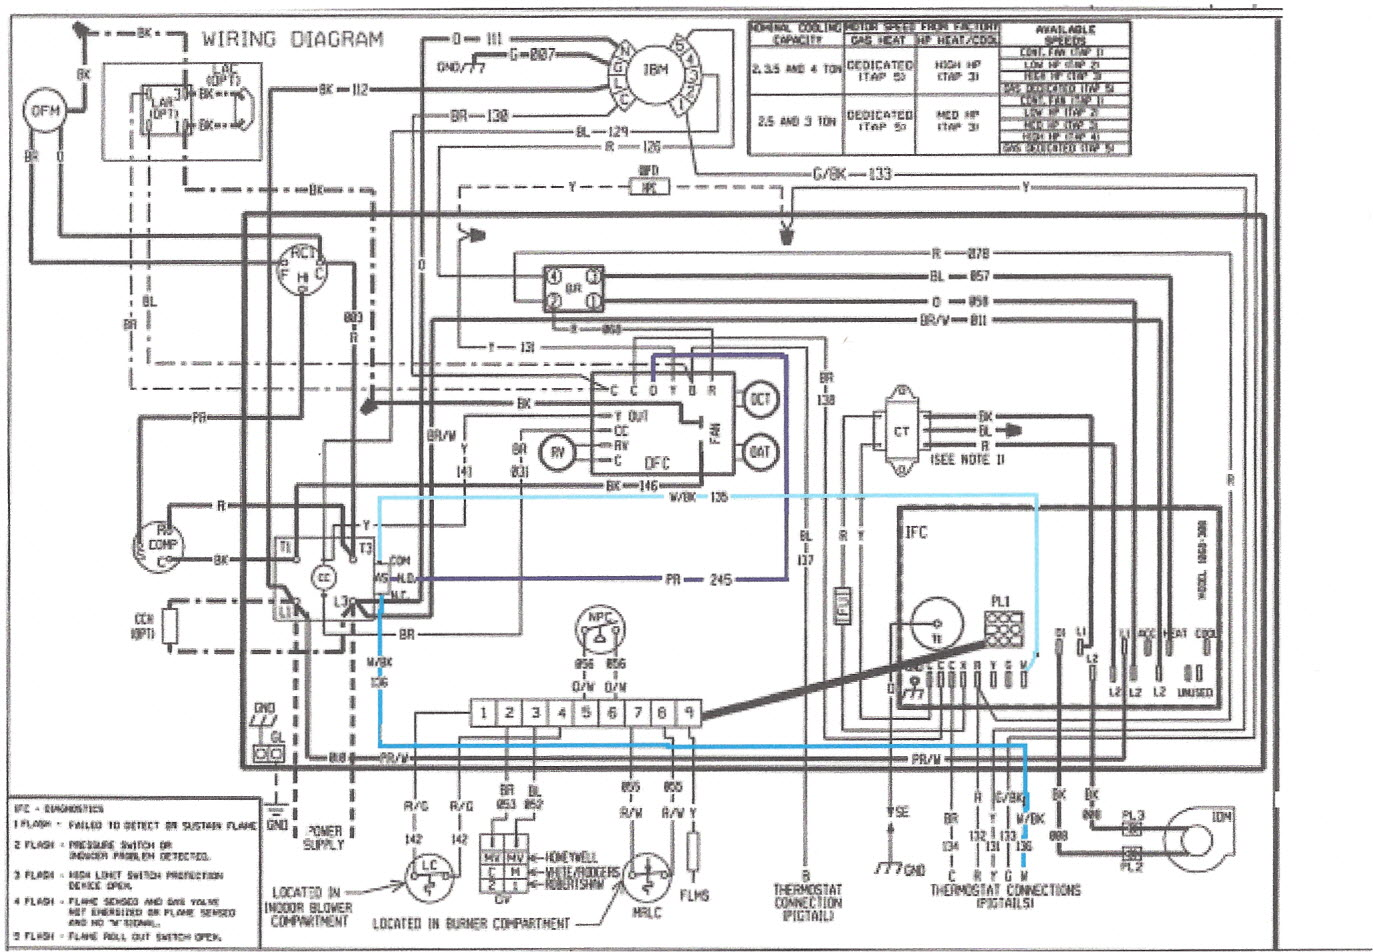 Rheem 80 Wiring Diagram - Fusebox and Wiring Diagram wires-petty - wires -petty.paoloemartina.itdiagram database - paoloemartina.it